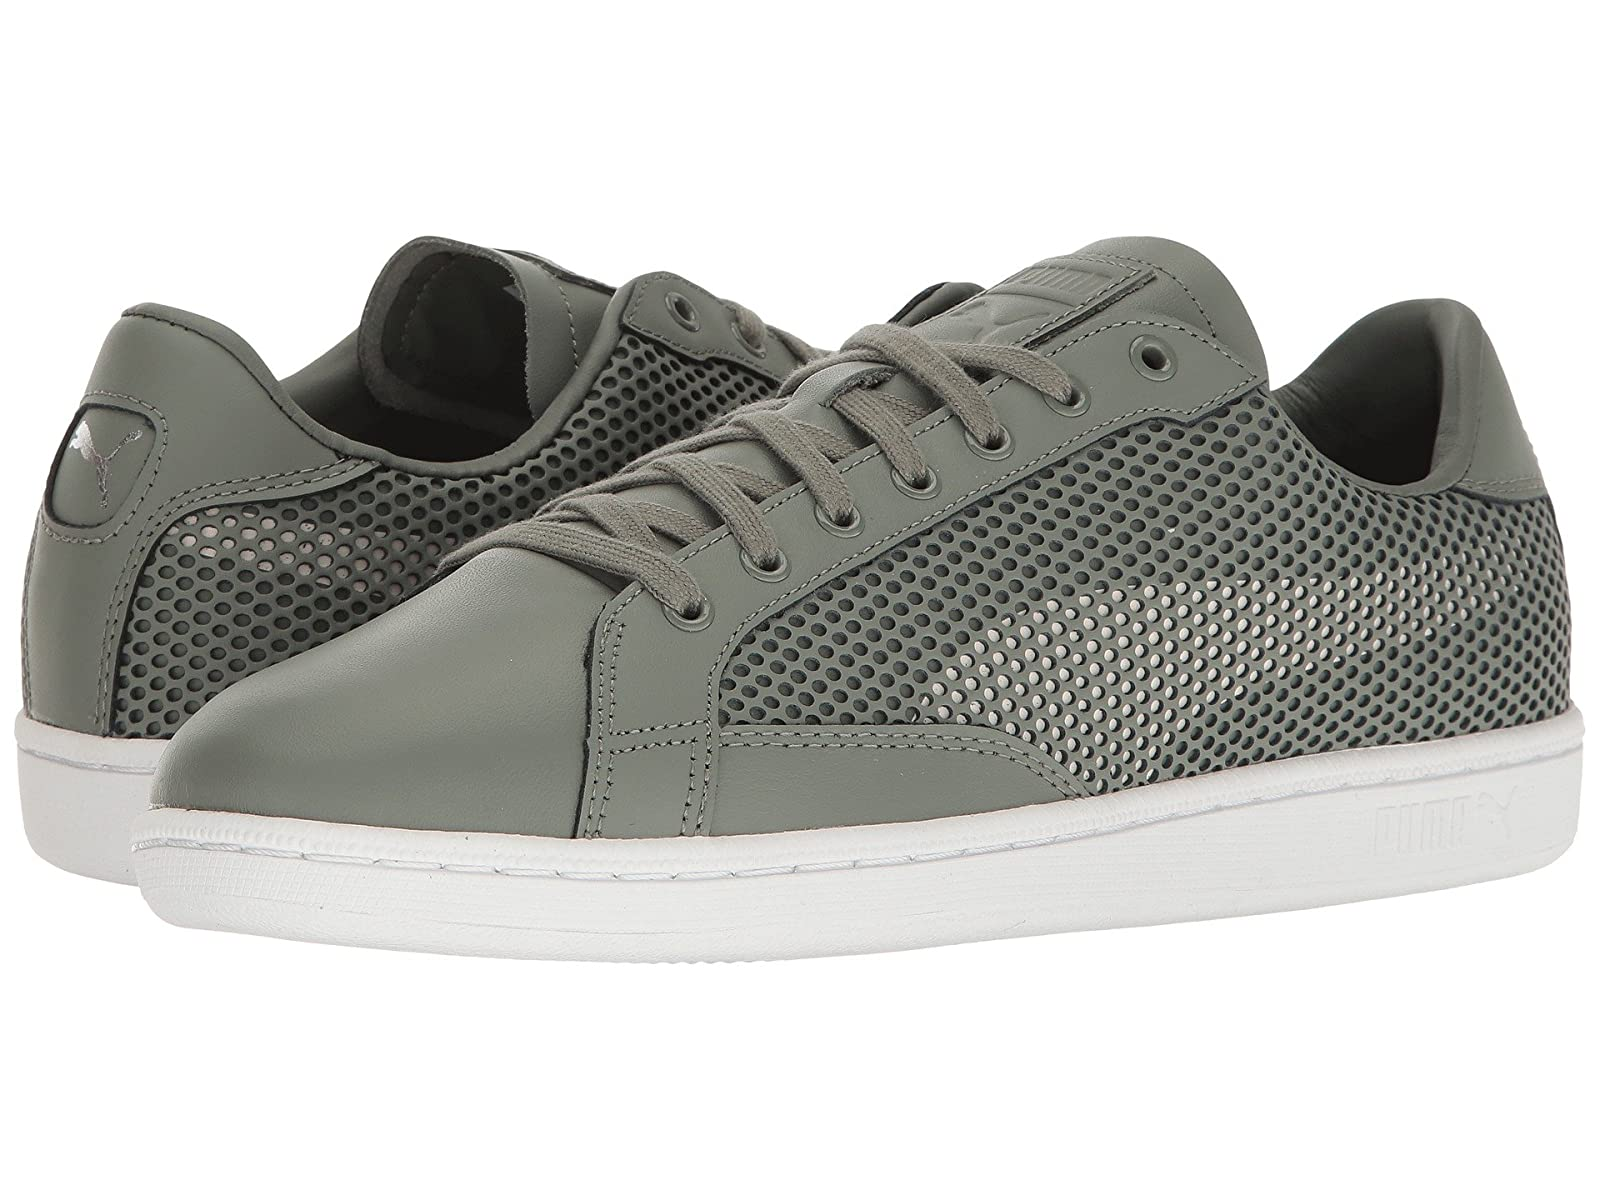 PUMA Match 74 Summer ShadeCheap and distinctive eye-catching shoes